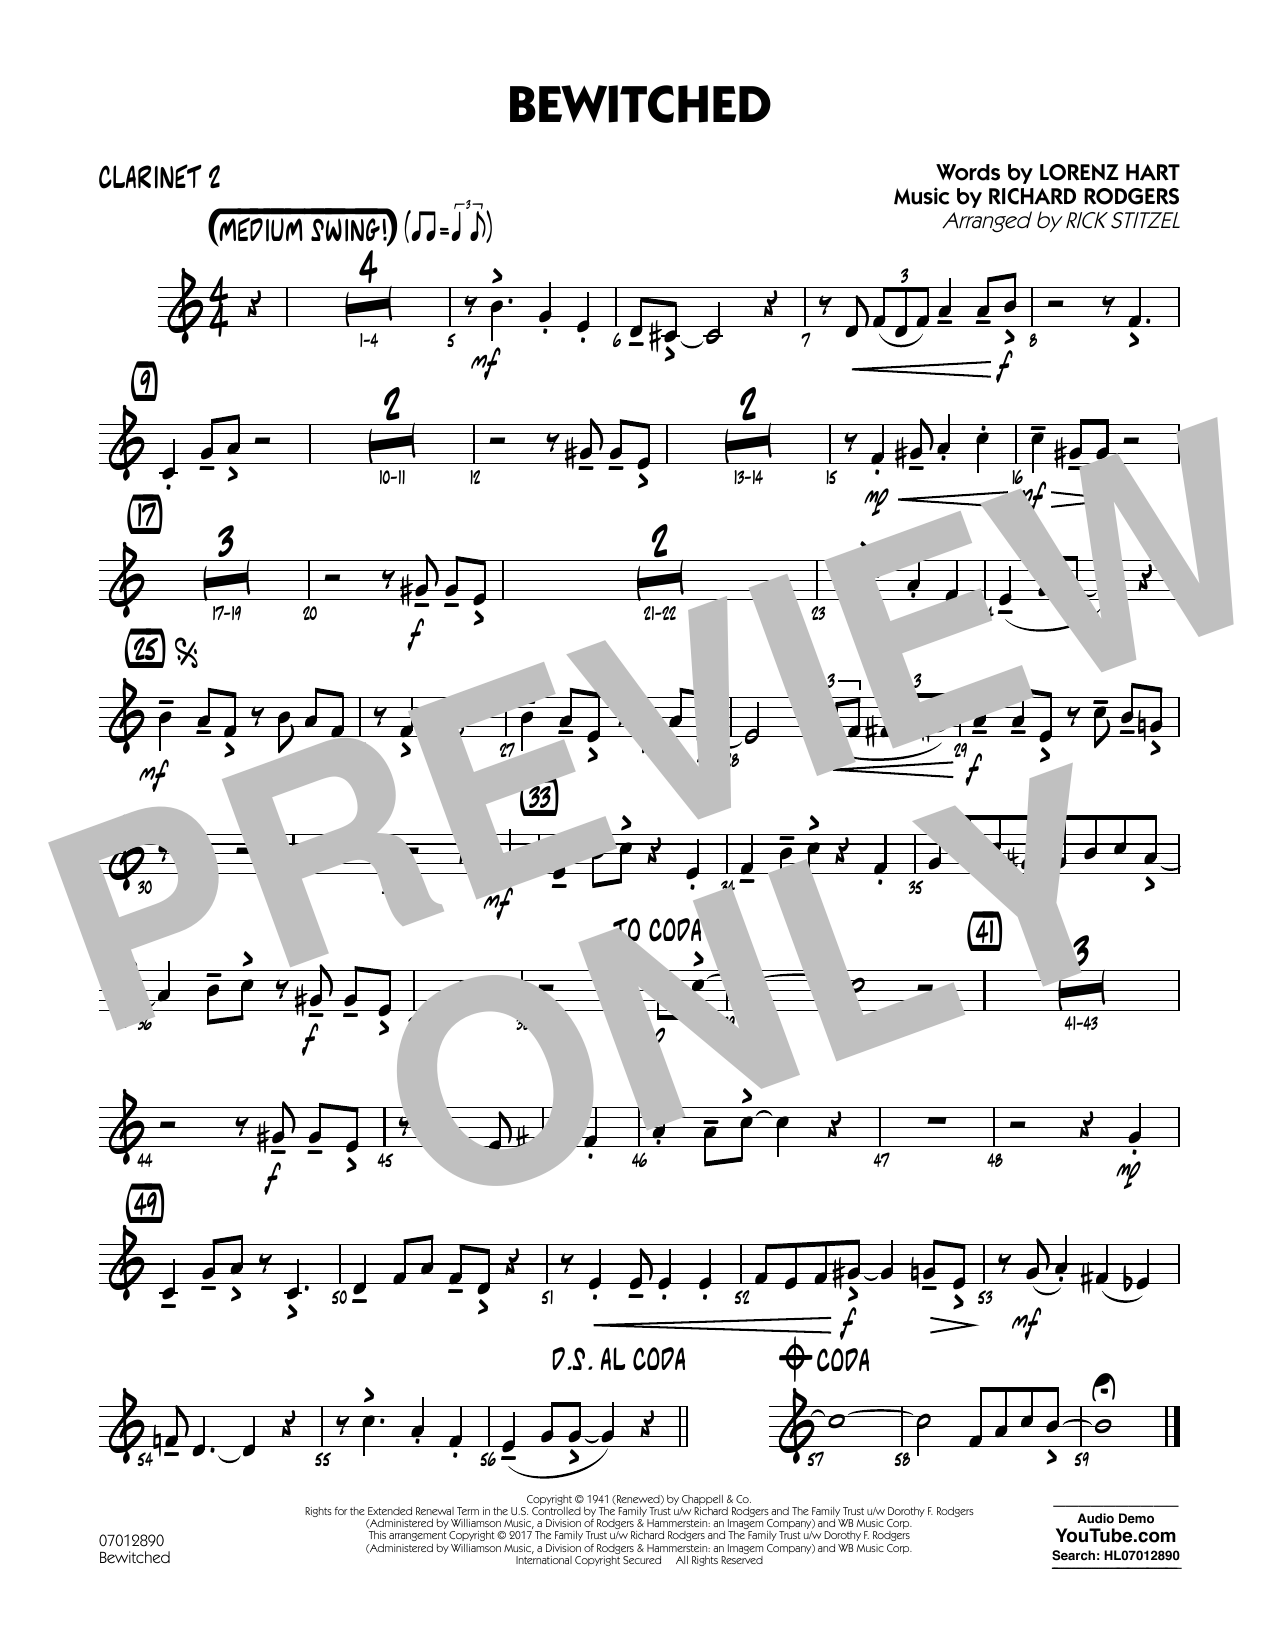 Bewitched - Clarinet 2 Sheet Music